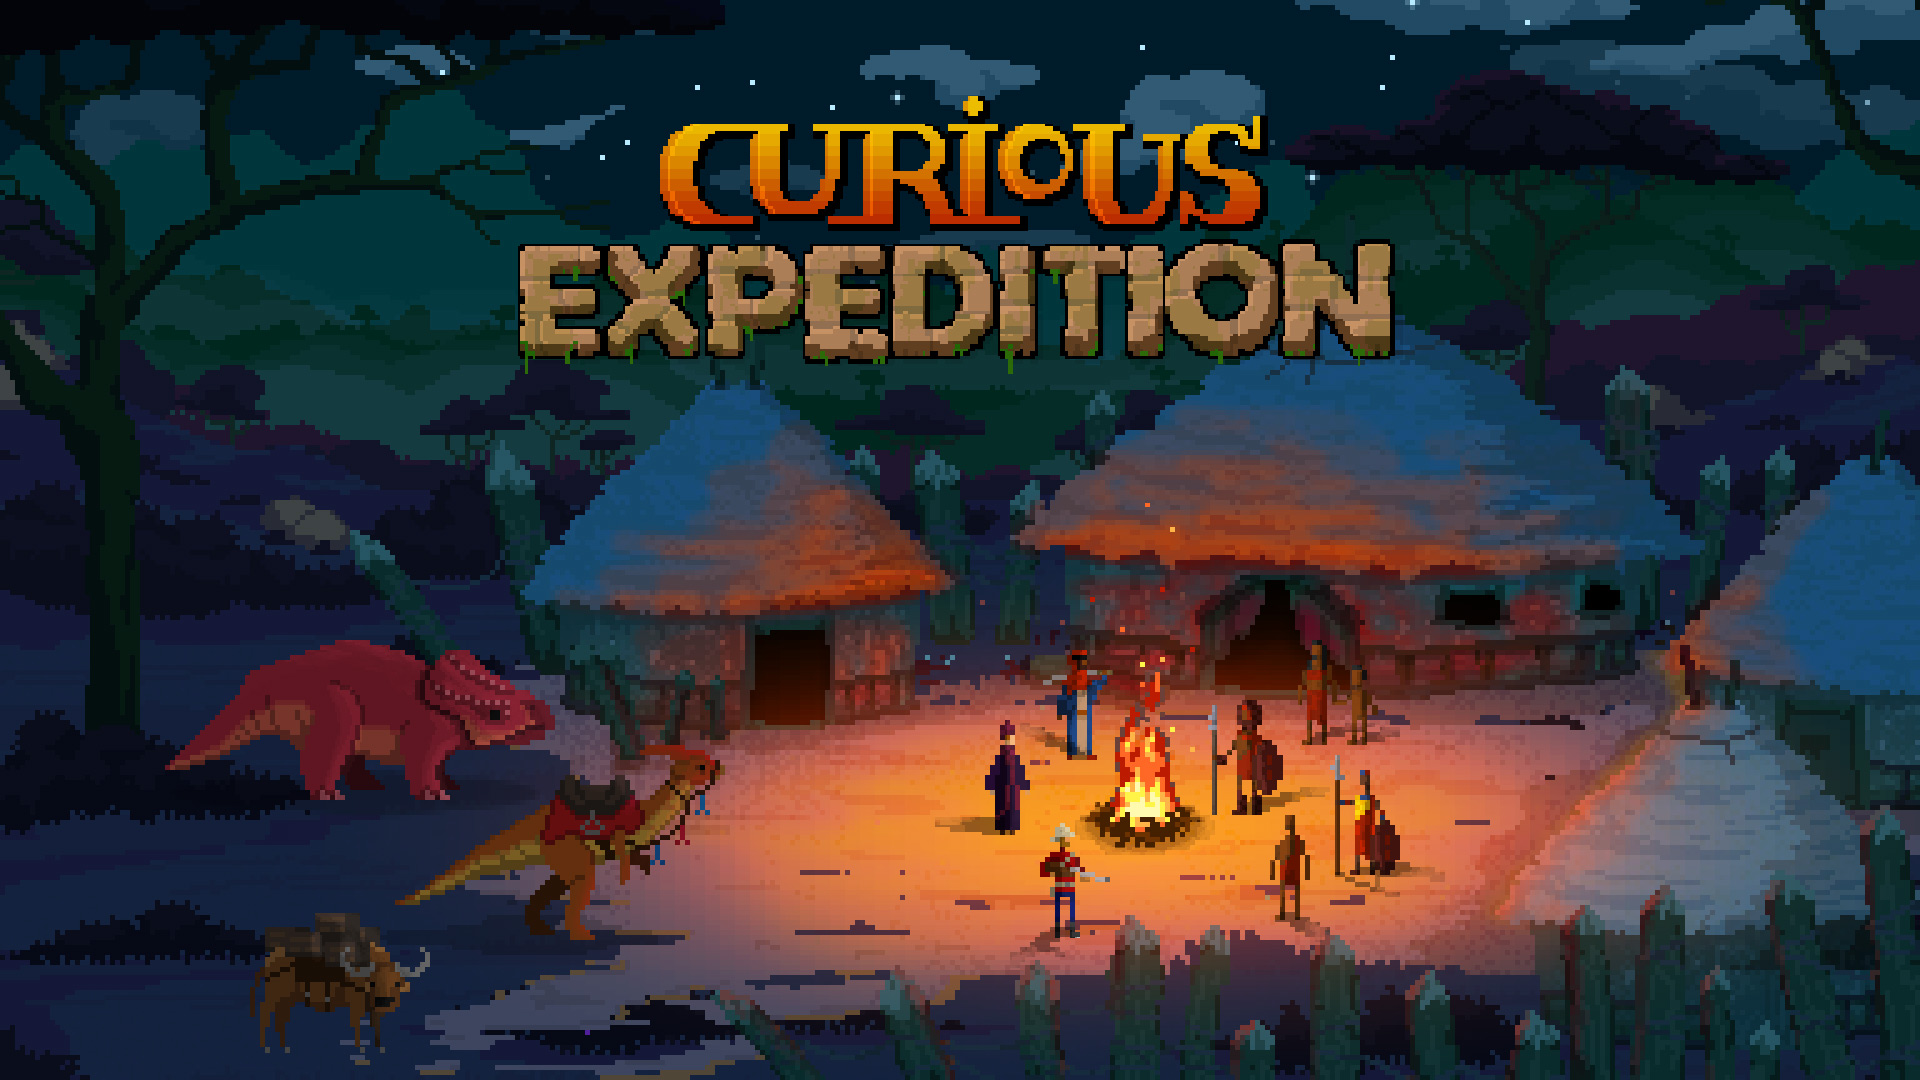 Nintendo Switch|ダウンロード購入|Curious Expedition